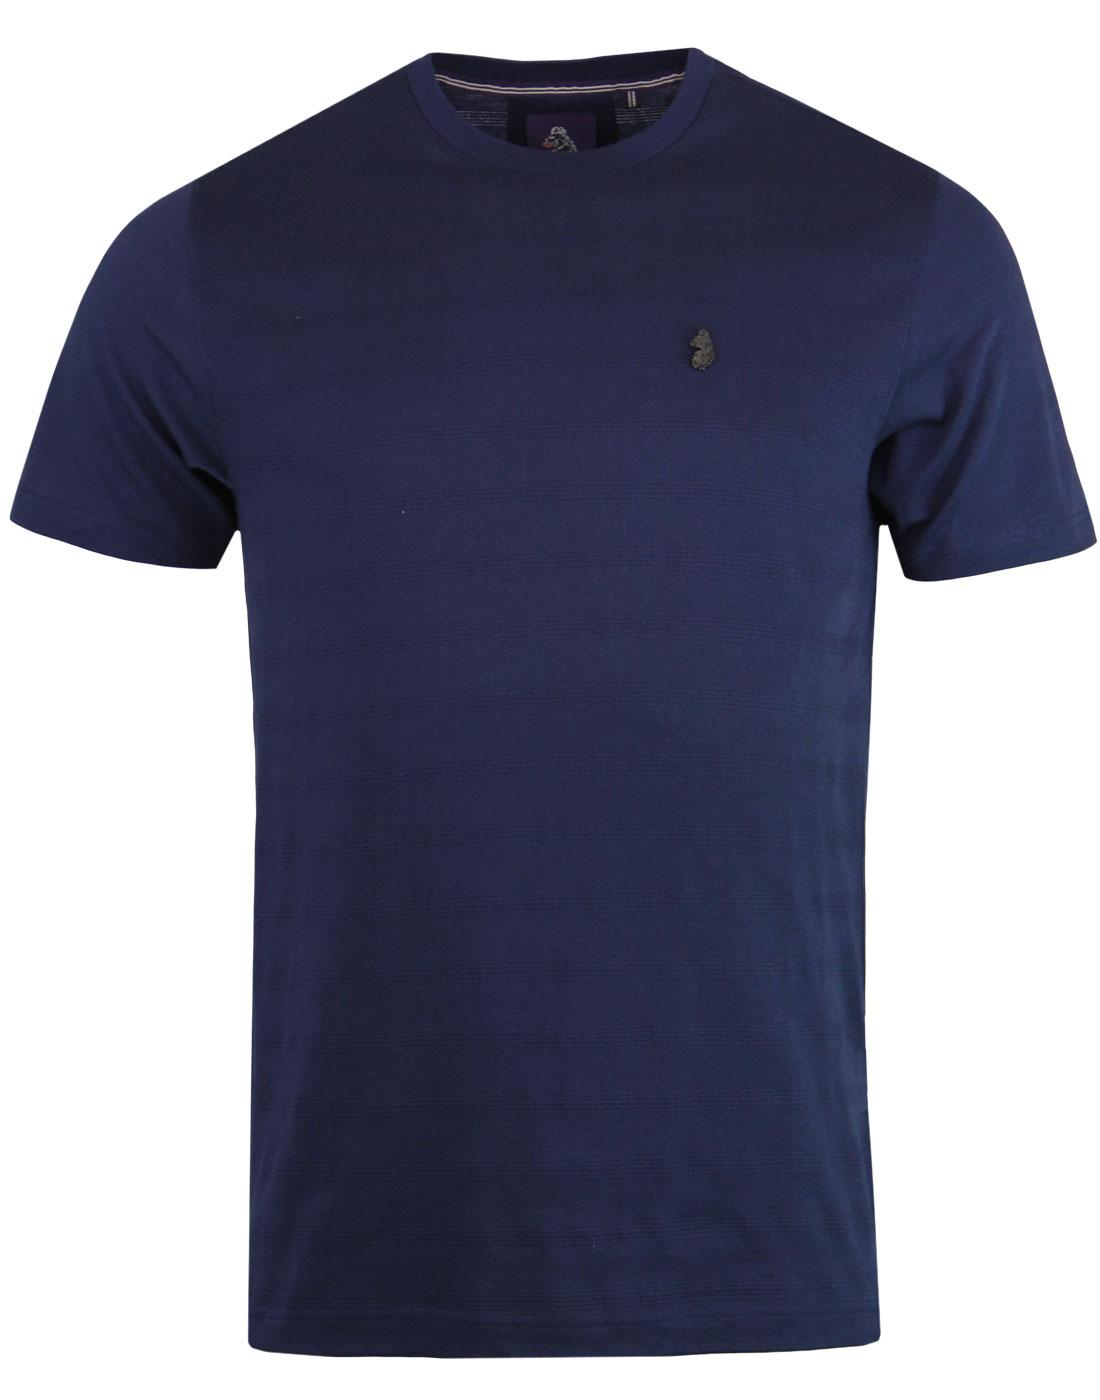 Cultraised LUKE Retro Micro Rib Crew T-shirt NAVY